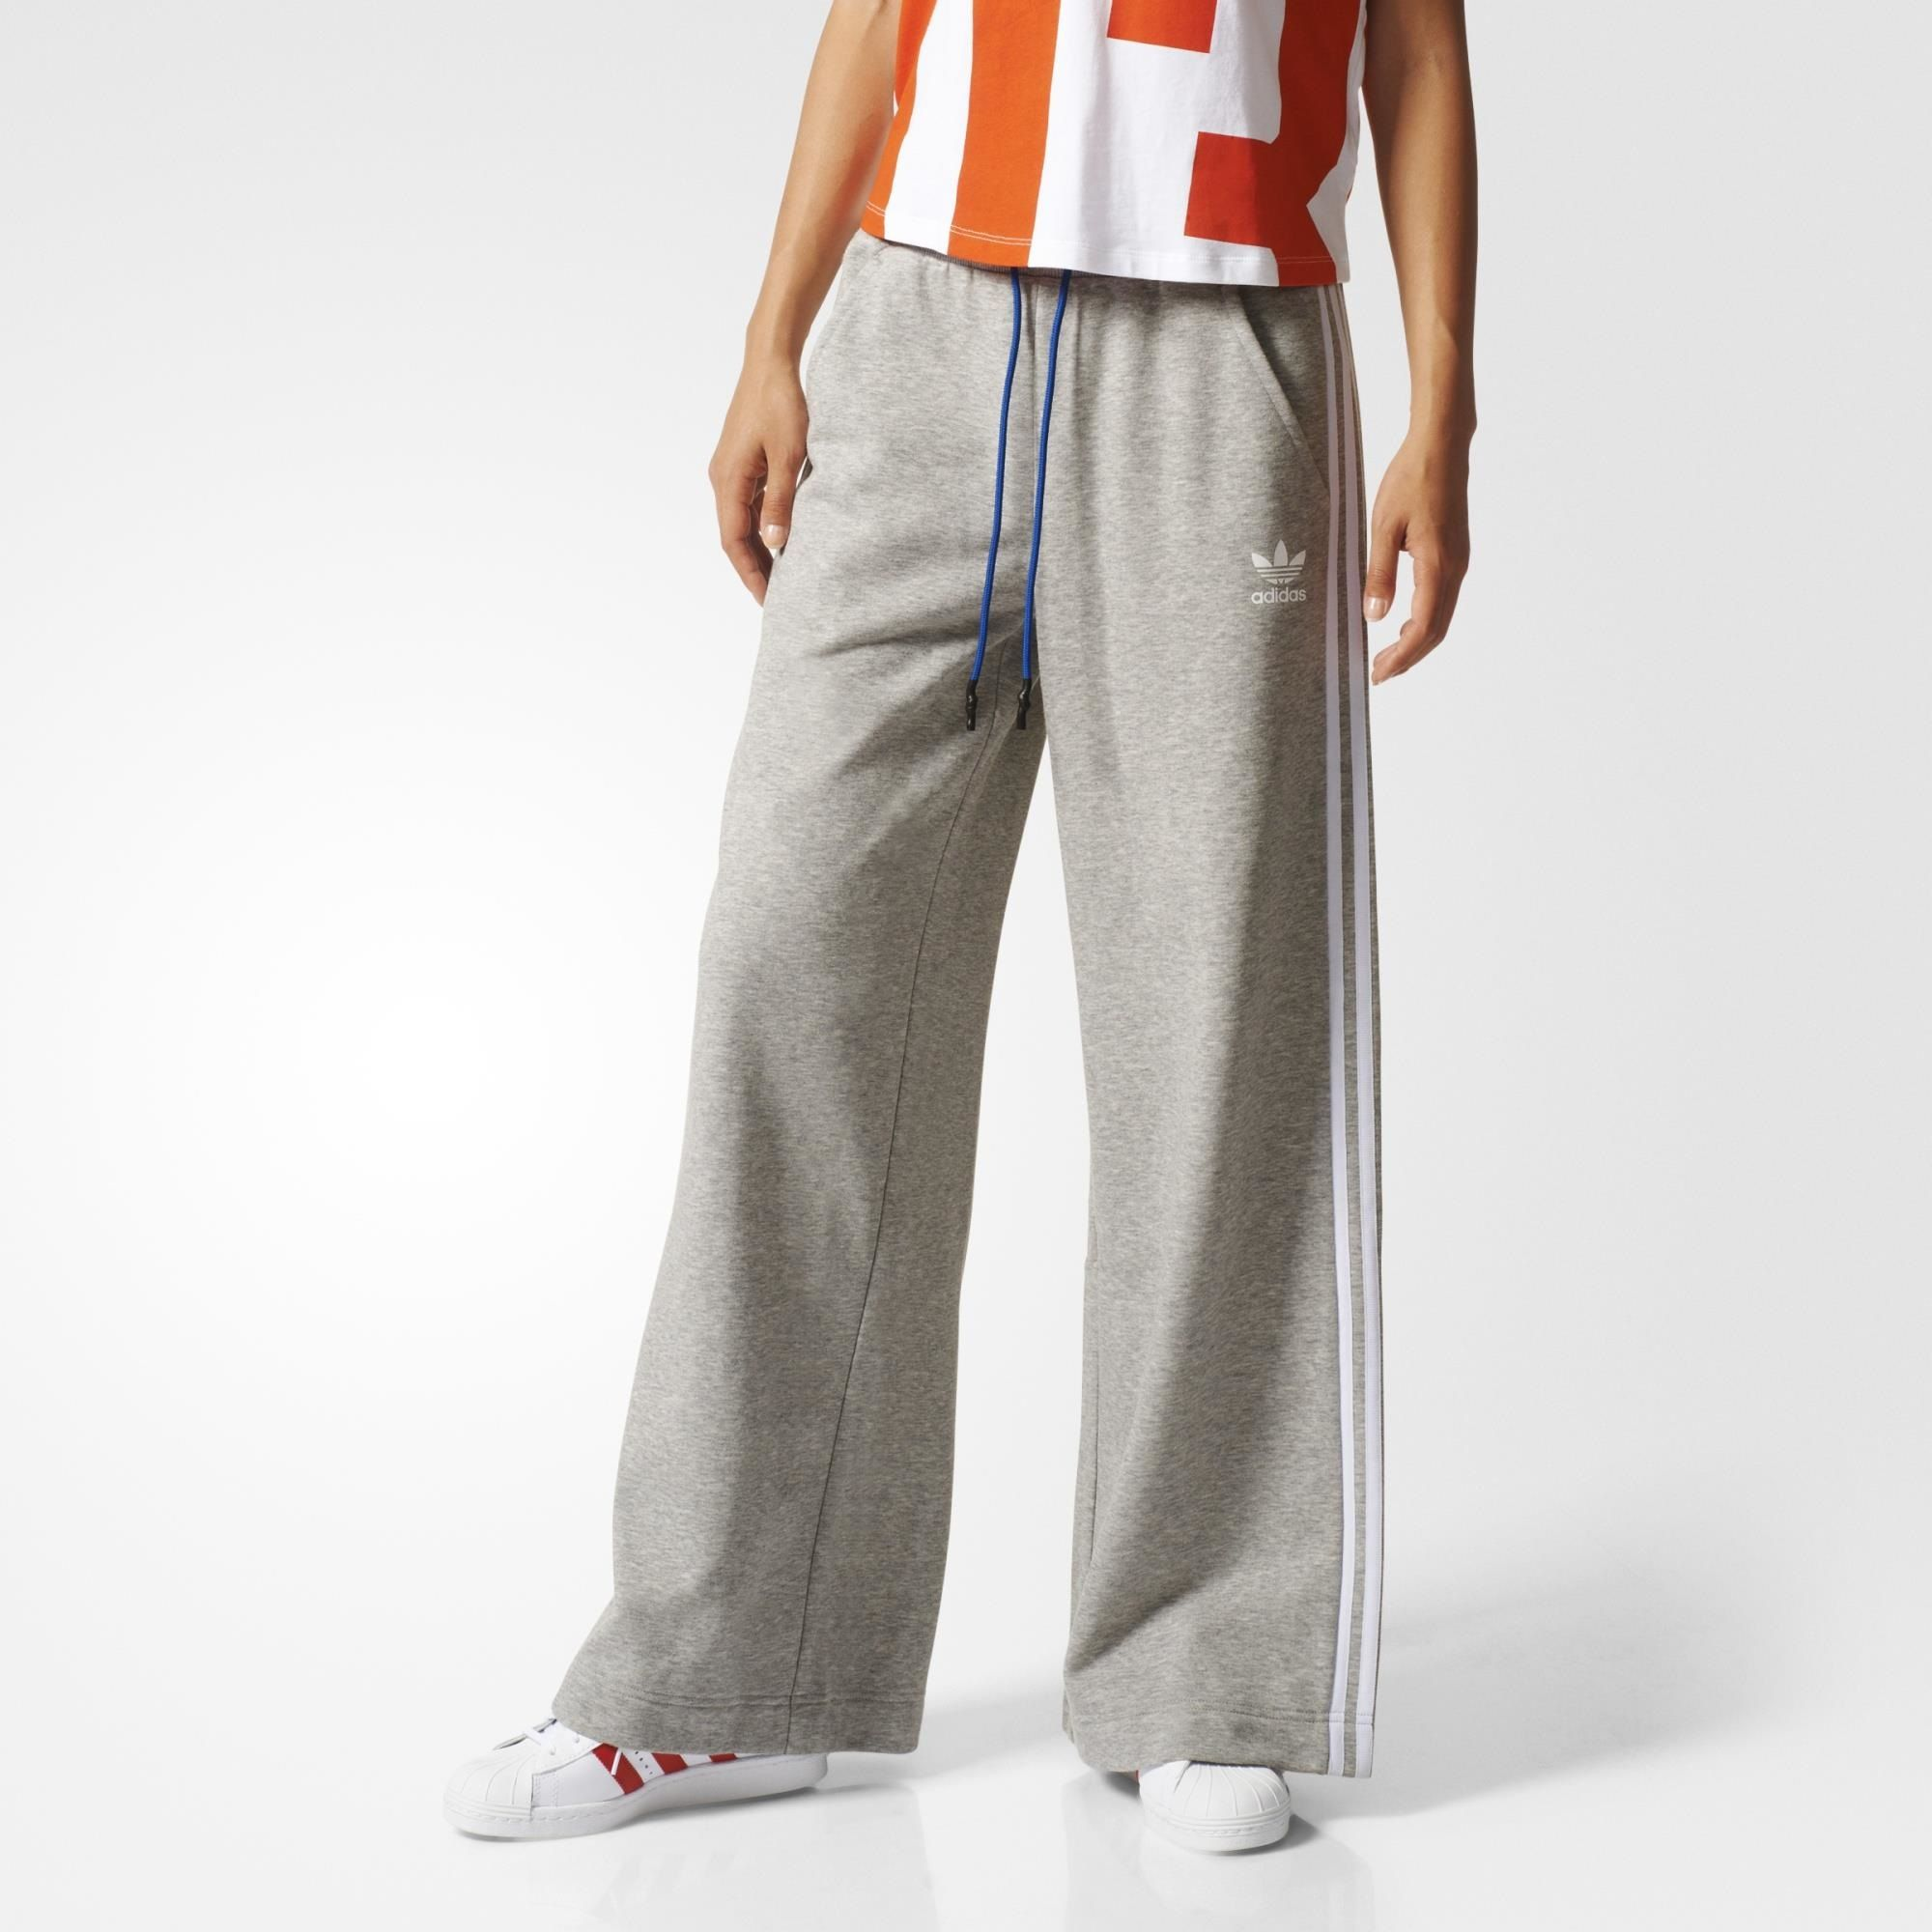 Back Soon Stronger Than Ever Pants Adidas Online Adidas Canada